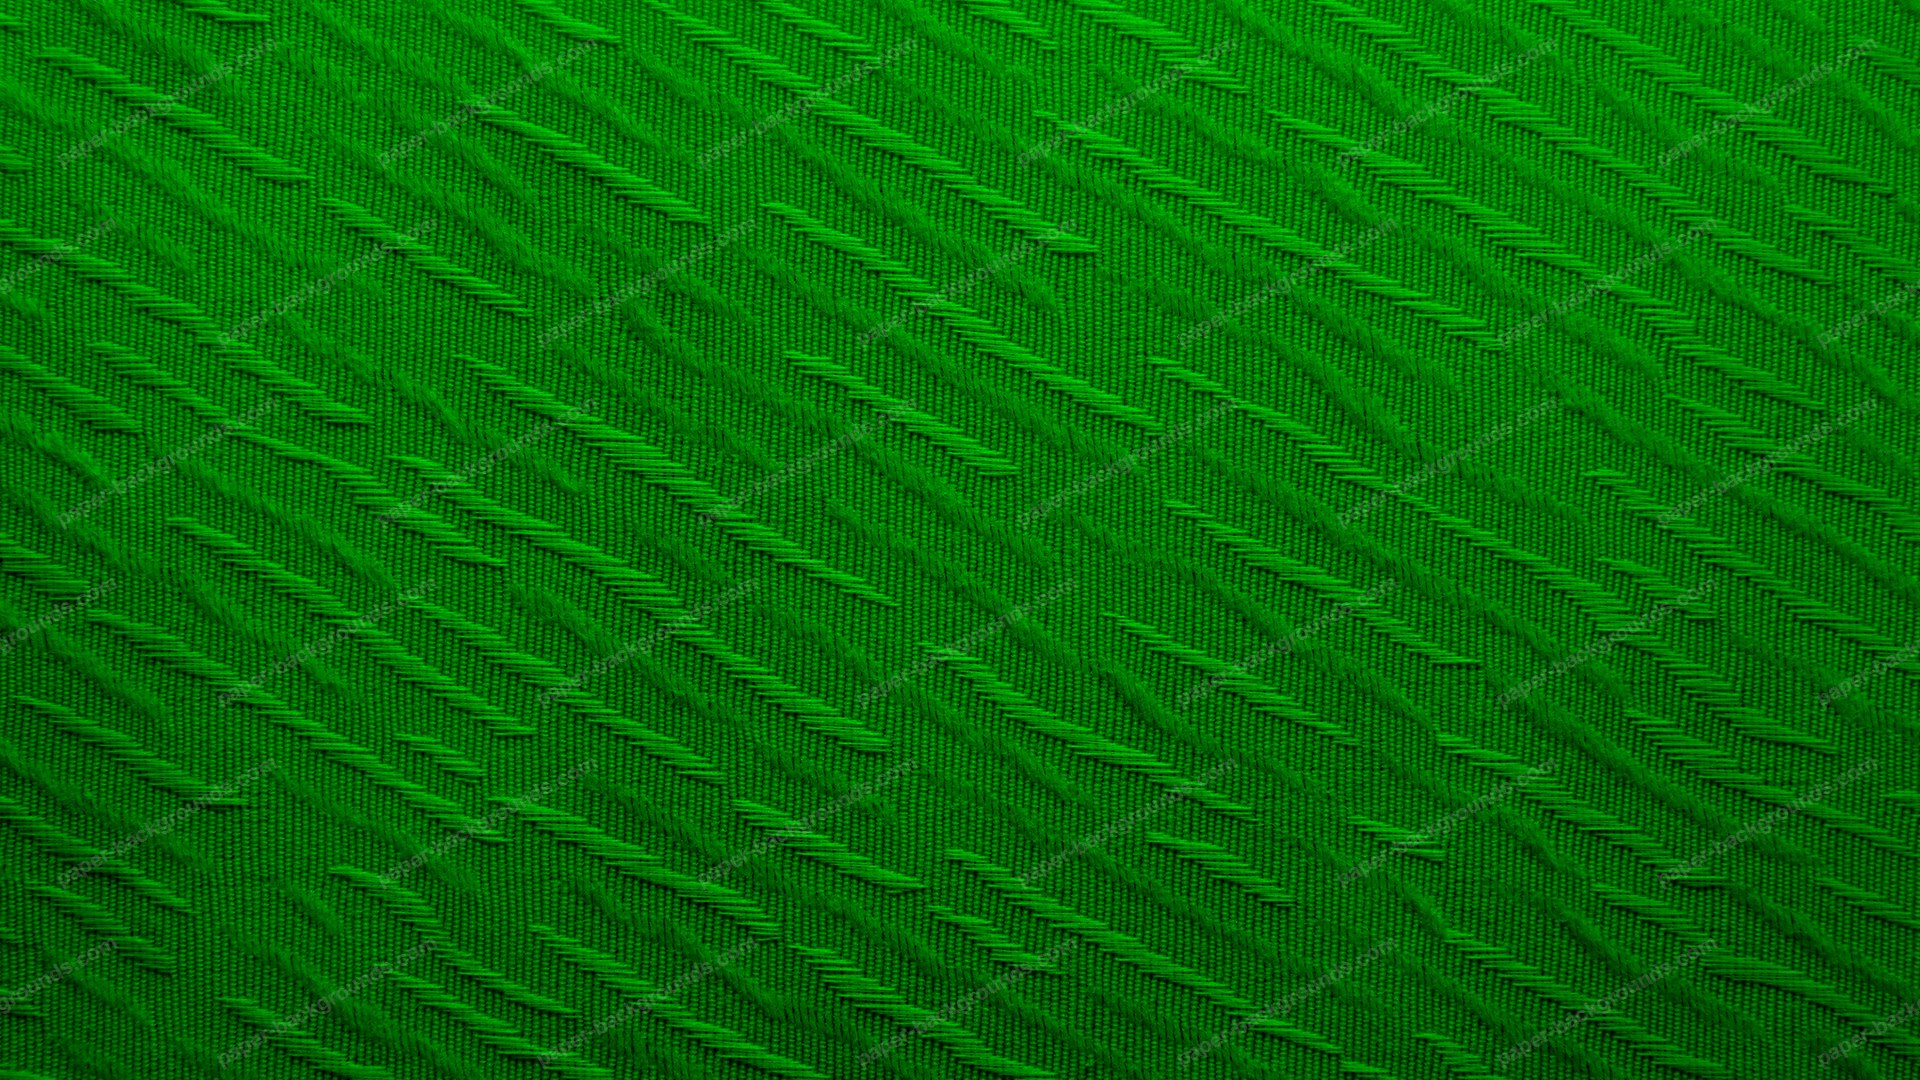 Green Diagonal Decorated Fabric HD 1920 x 1080p